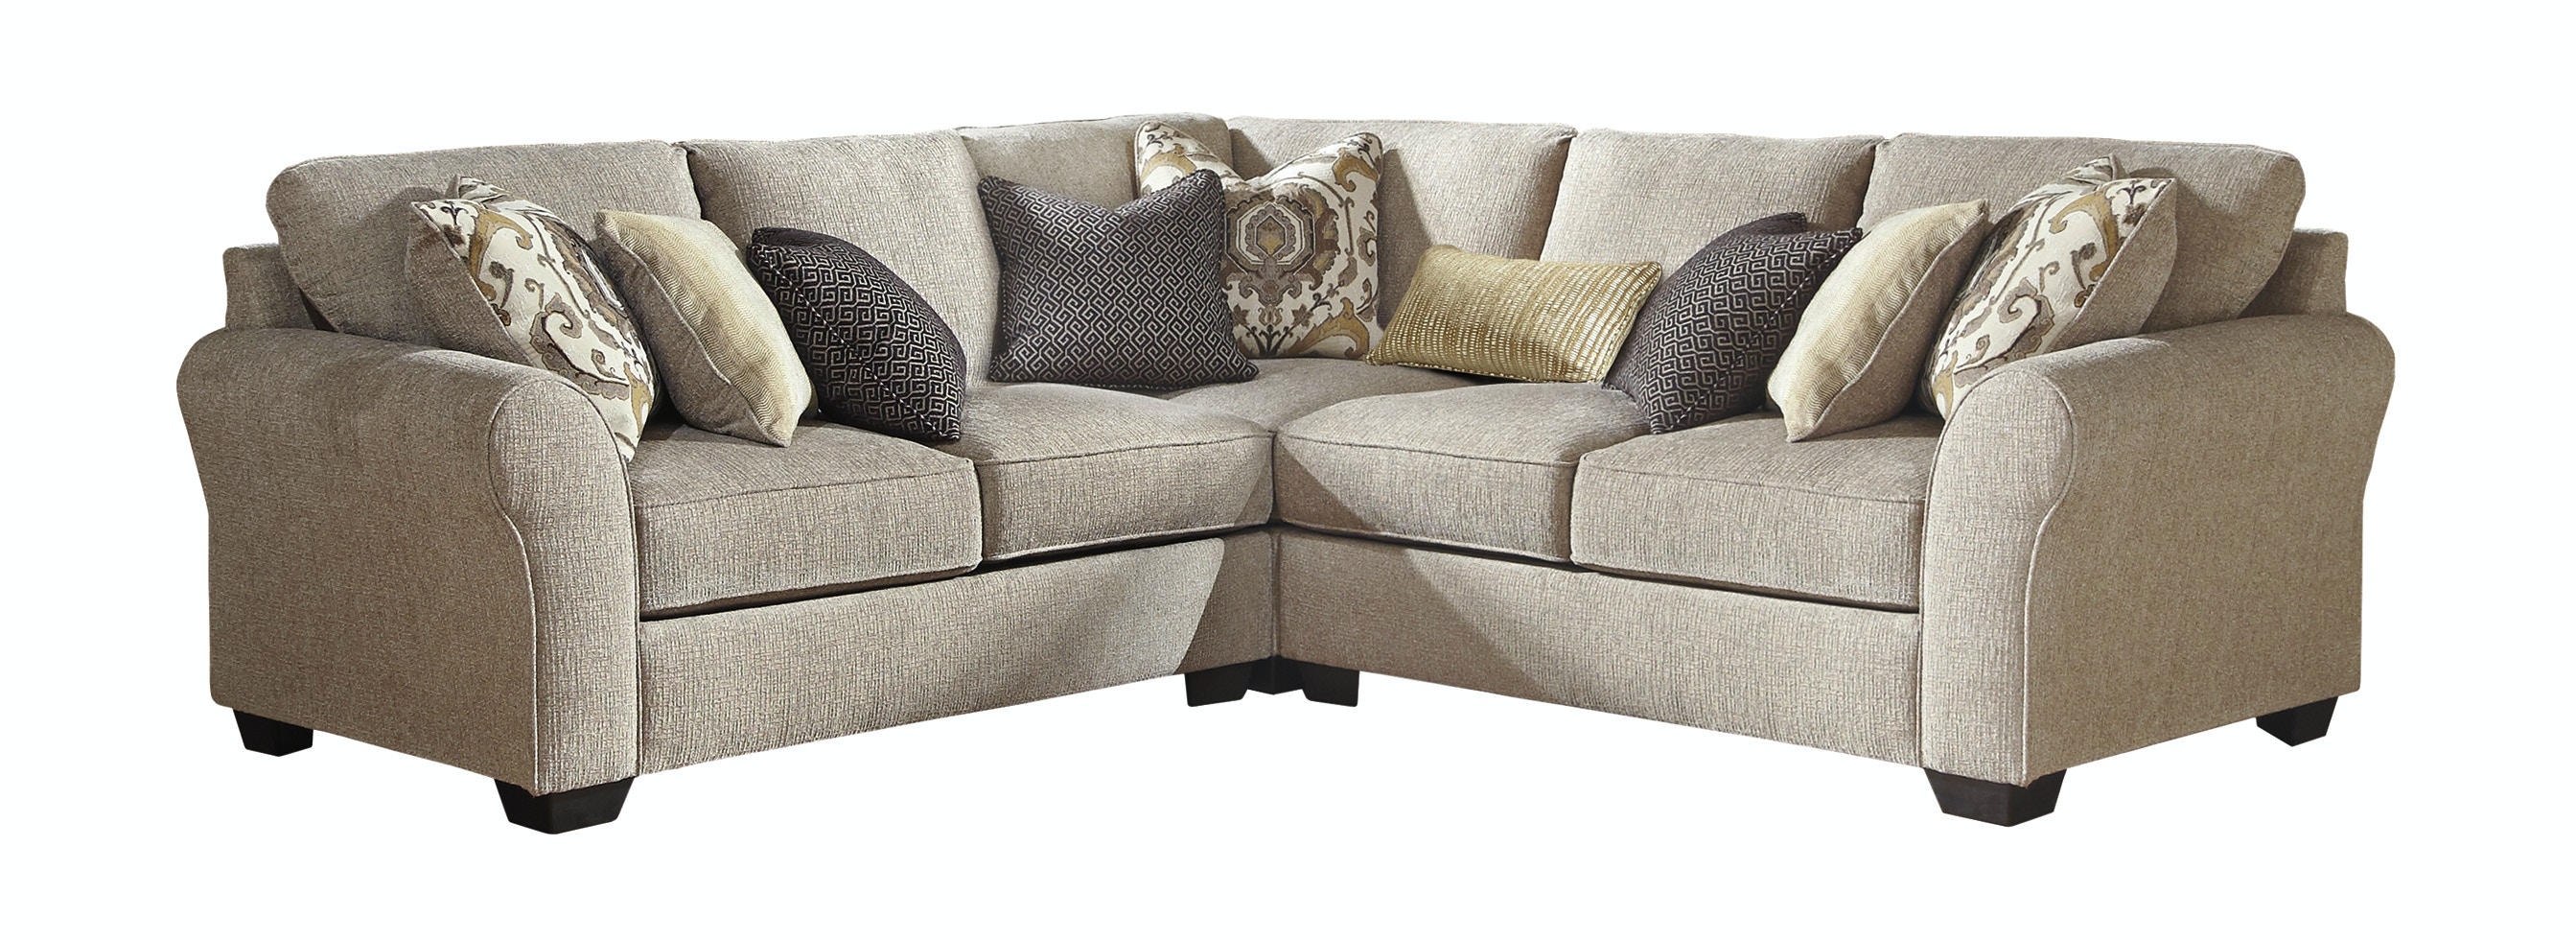 Signature Design By Ashley Living Room Pantomine Balance Sectional 609851   Furniture  Fair   Cincinnati U0026 Dayton OH And Northern KY